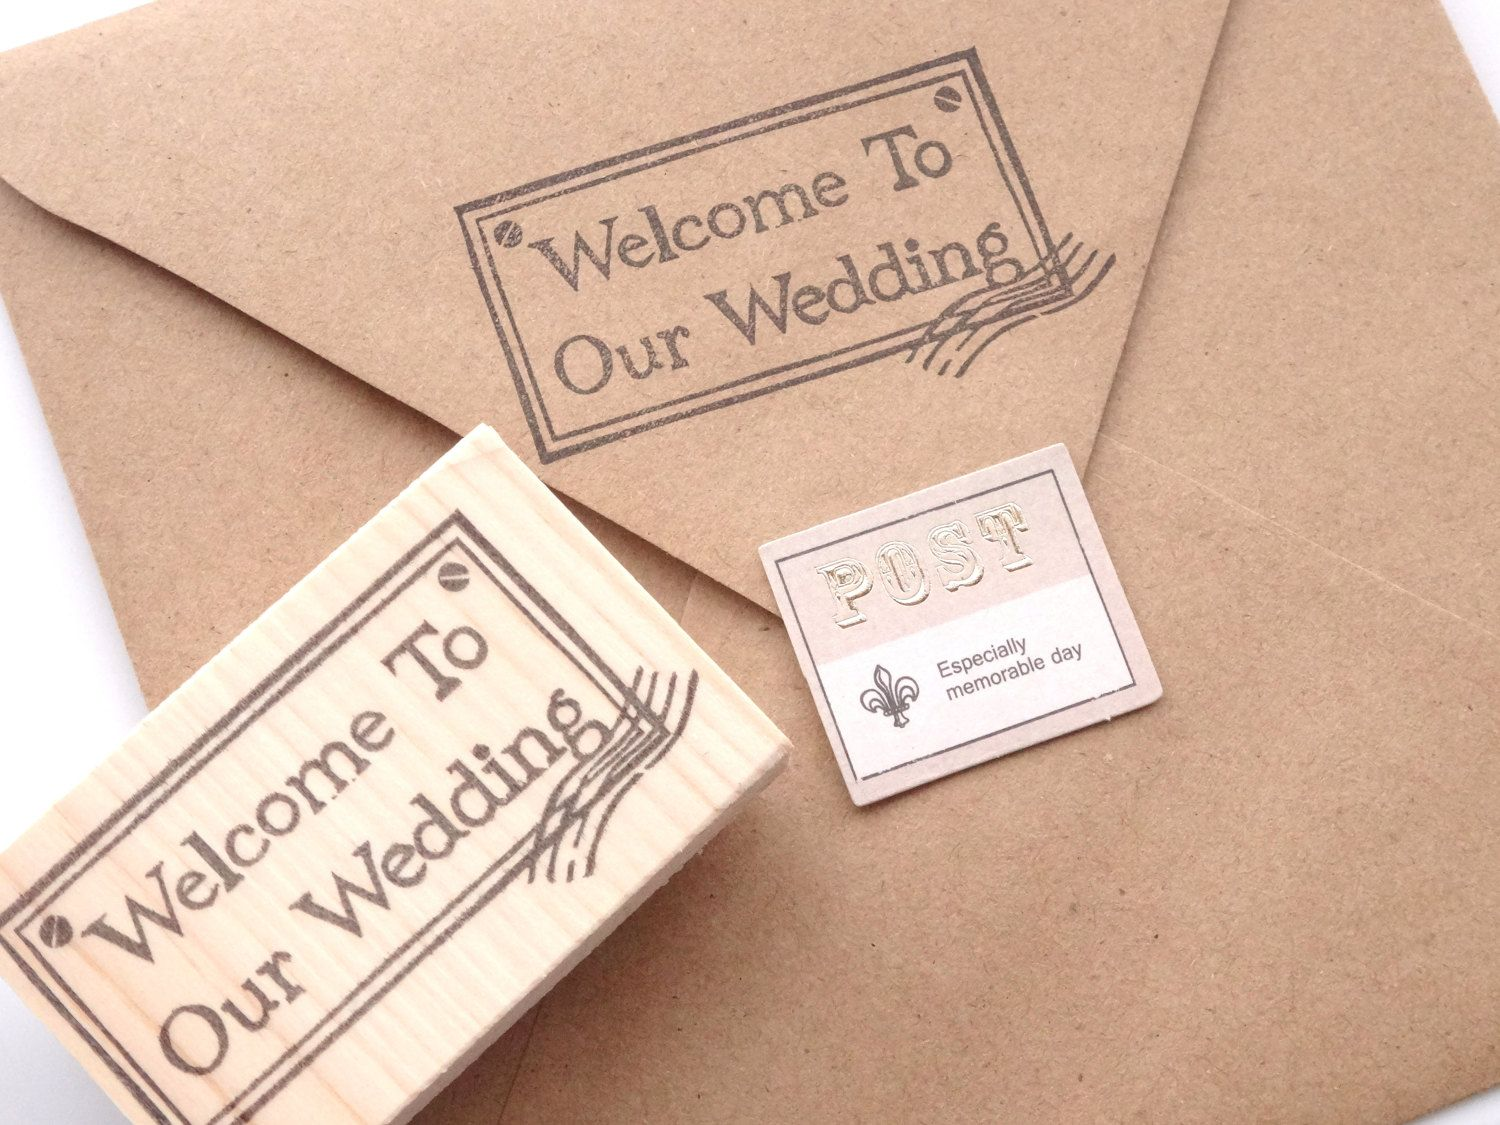 Welcome To Our Wedding Stamp Invitation Decor Diy Wedding Rubber